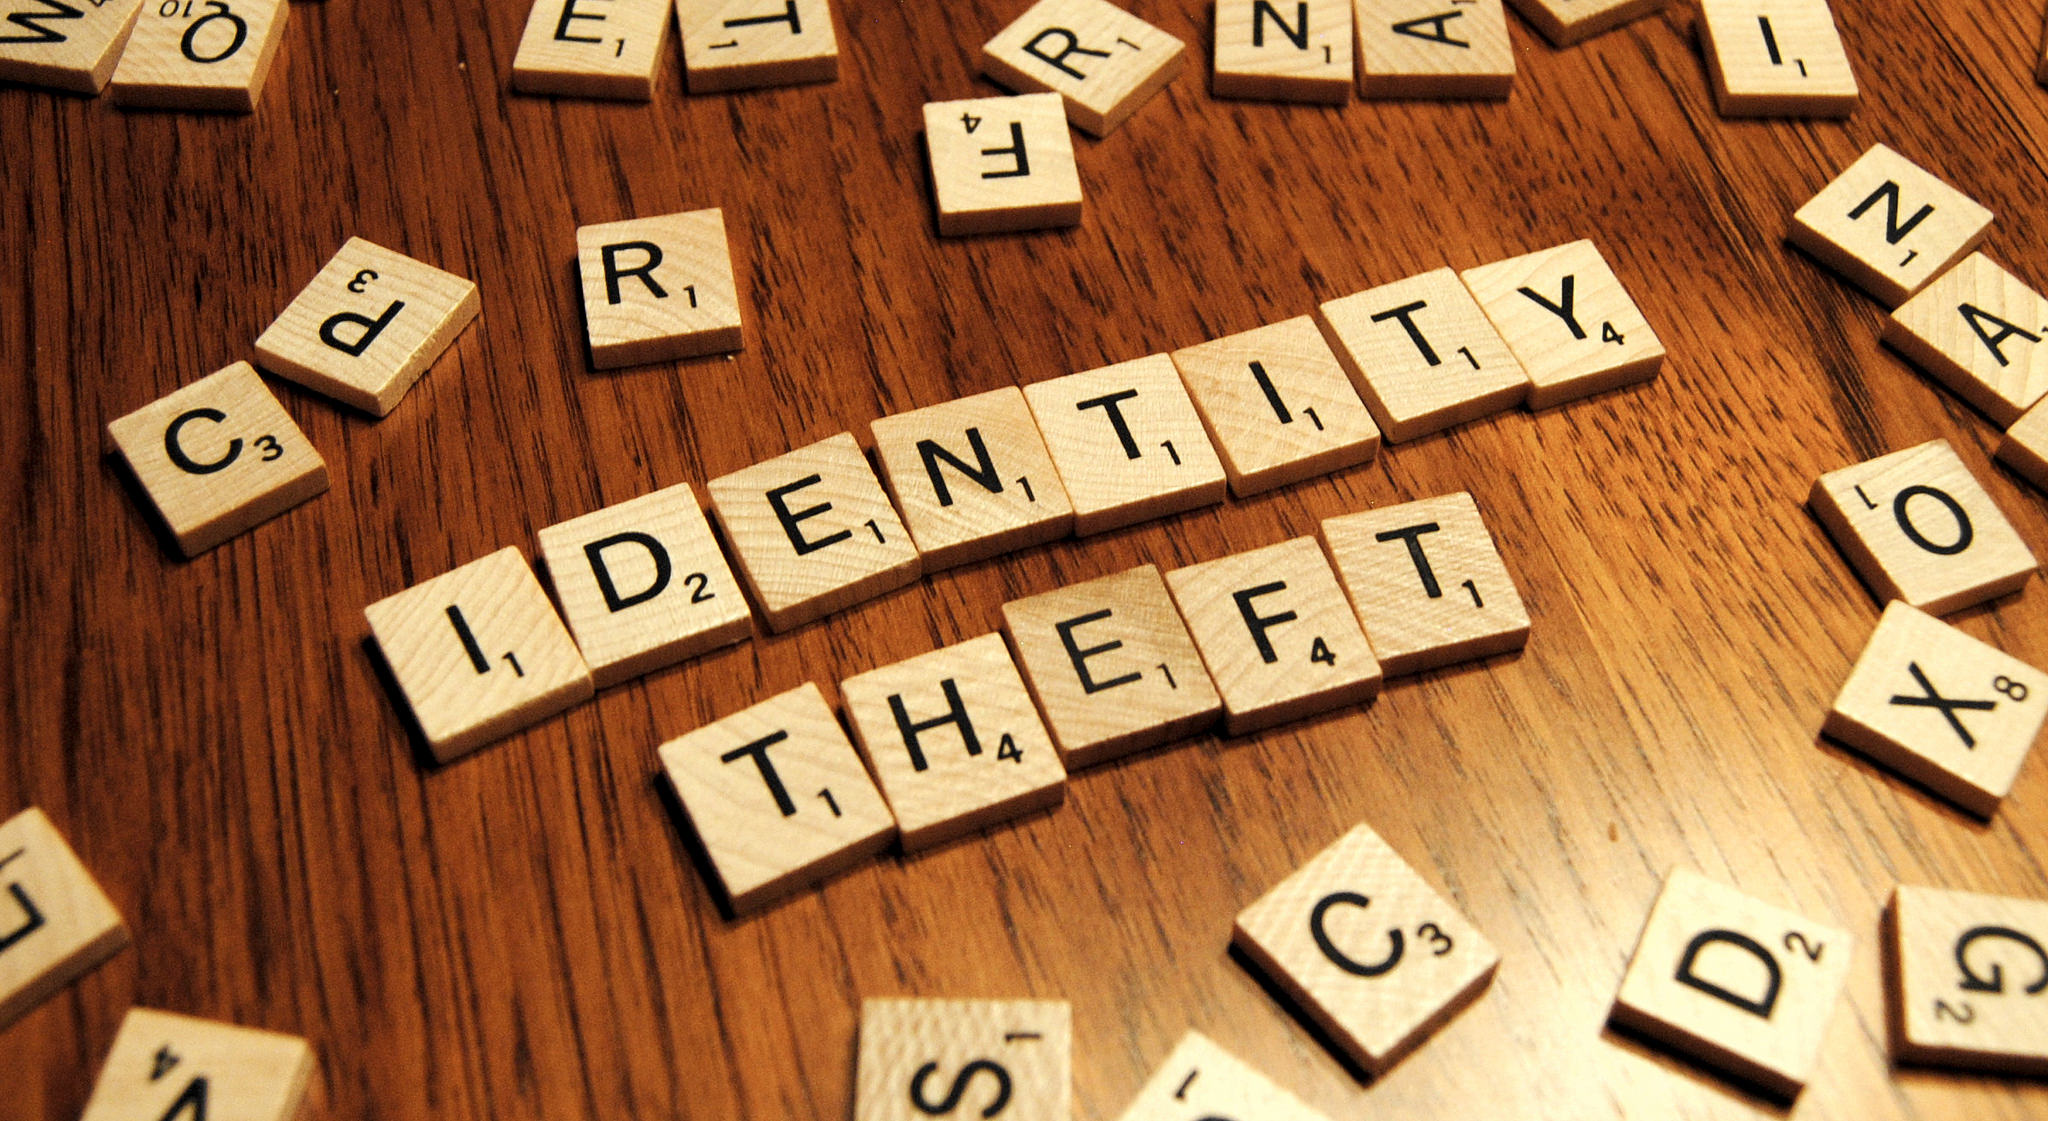 Secure Paper Shredding to Prevent Identity Theft